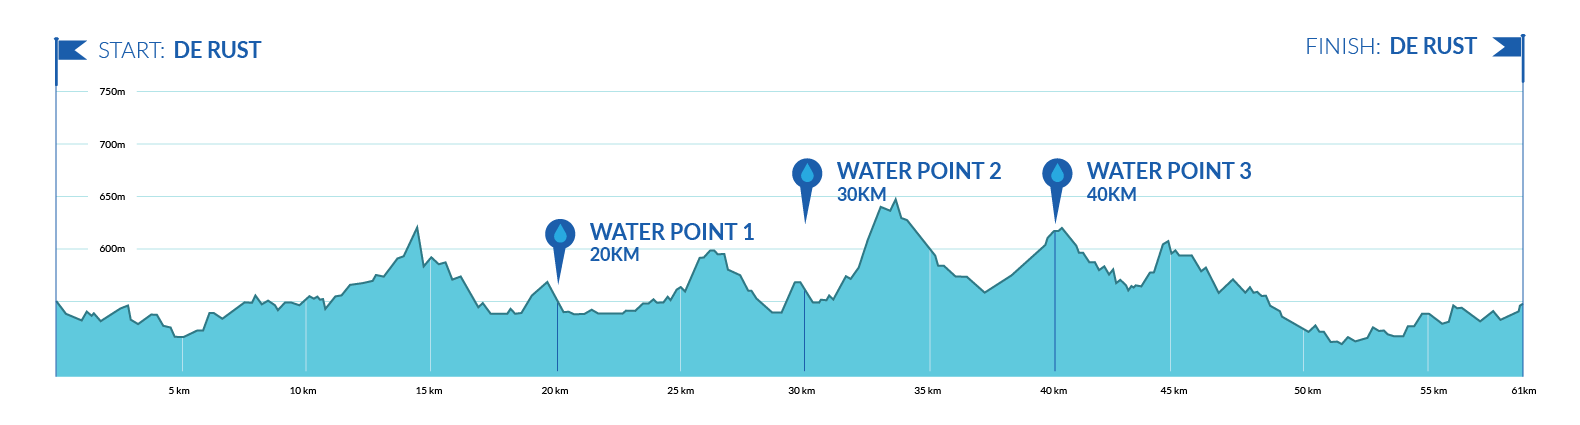 Mountain Bike Challenge 31km Route Profile